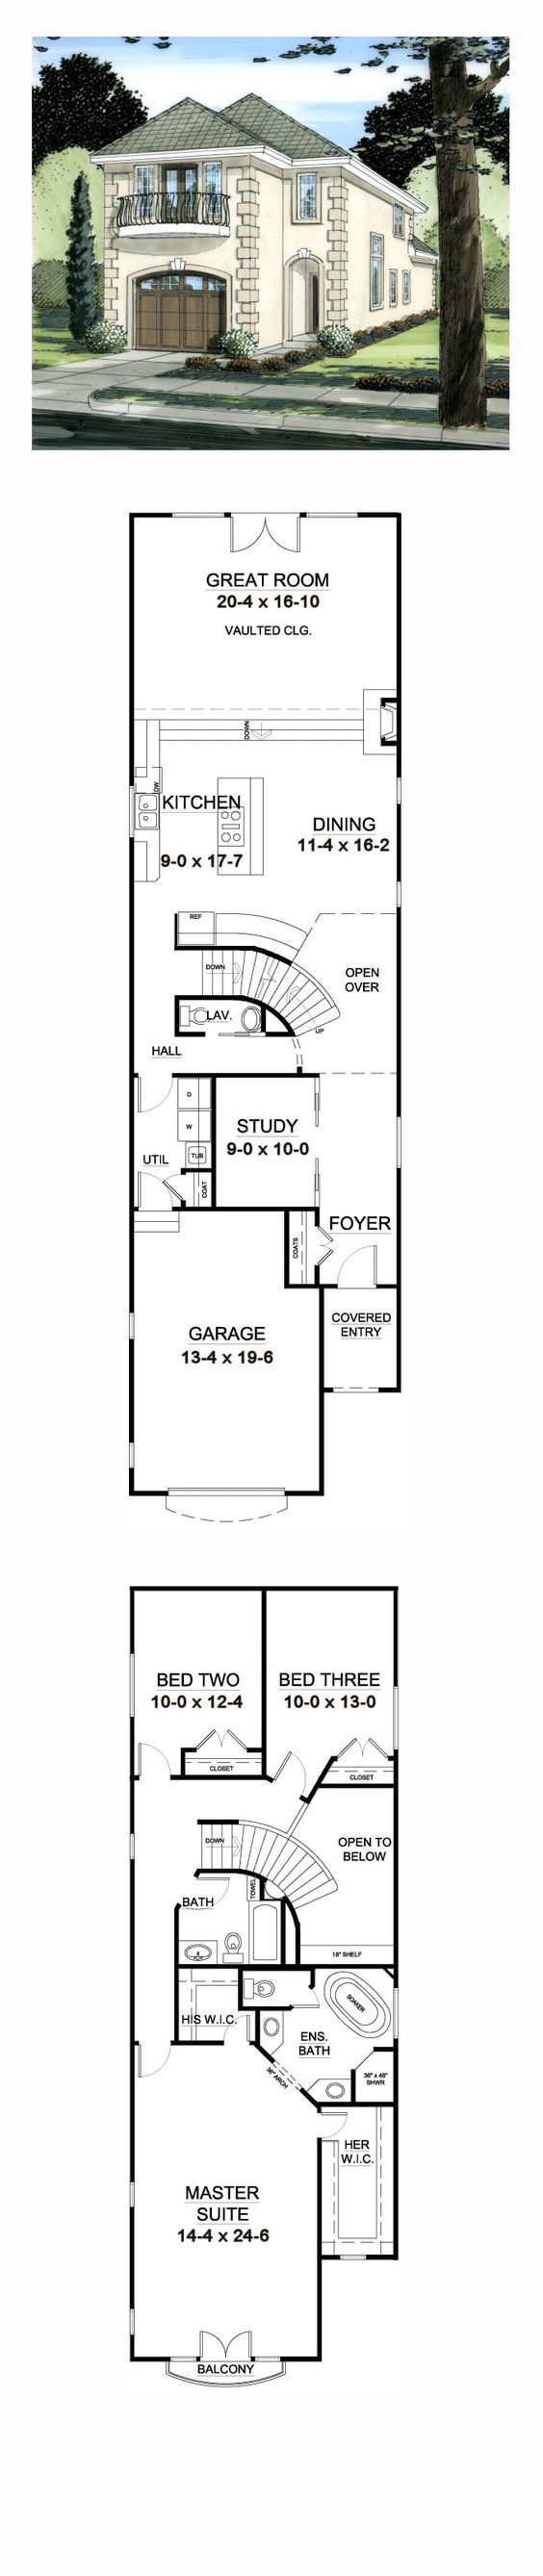 17 best ideas about narrow lot house plans on pinterest for Coastal living house plans for narrow lots